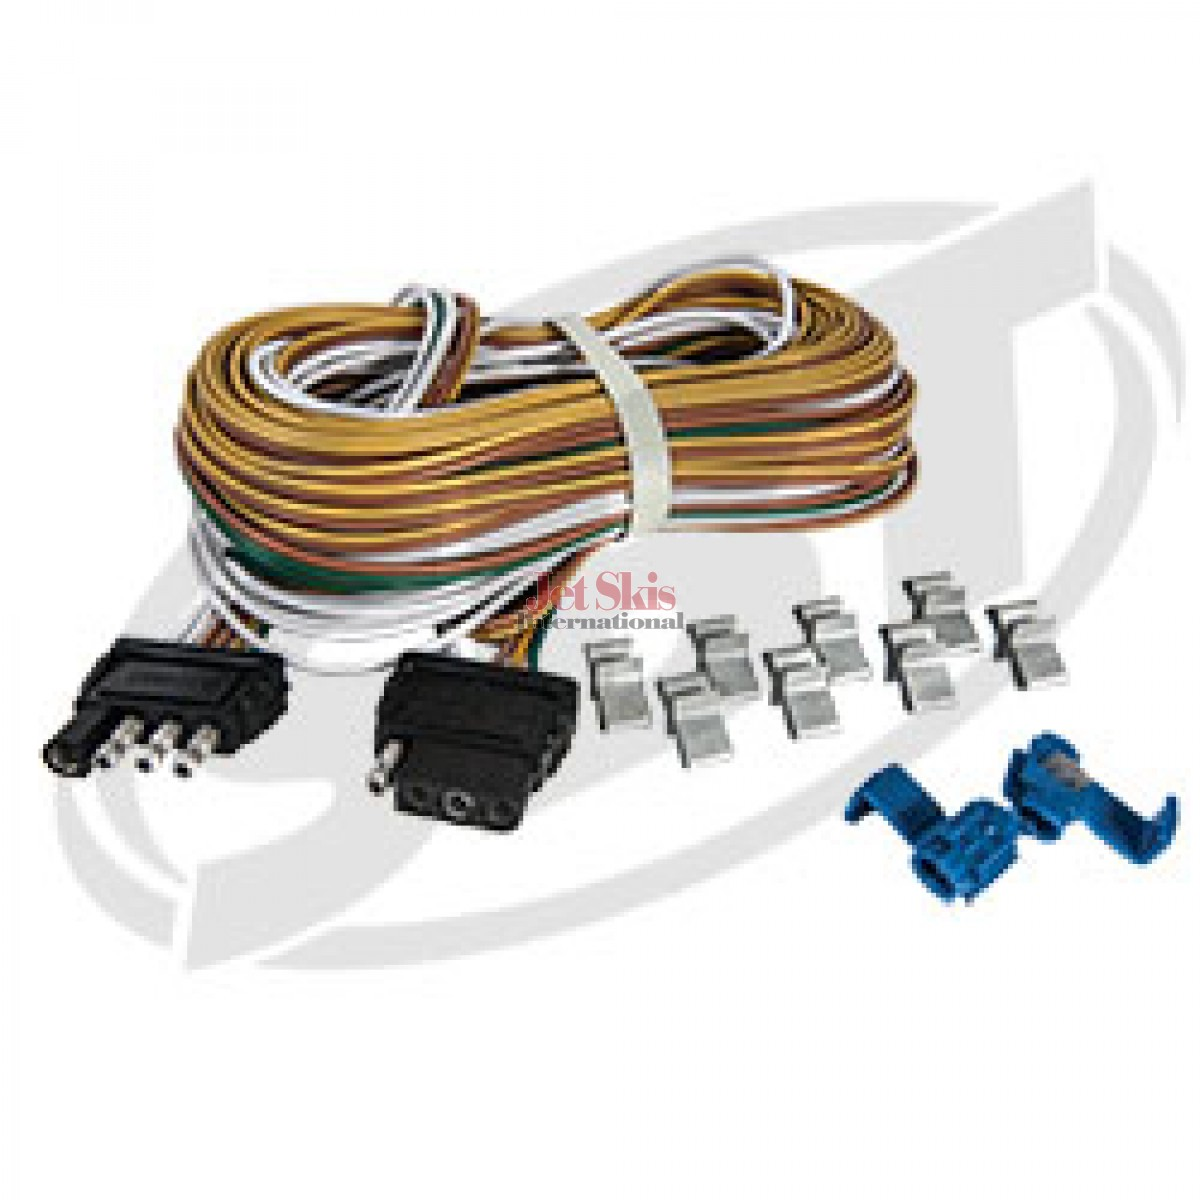 wire harness diagram 5 wire moped wire harness 25 w/ ground wire | jet skis international wire harness ground